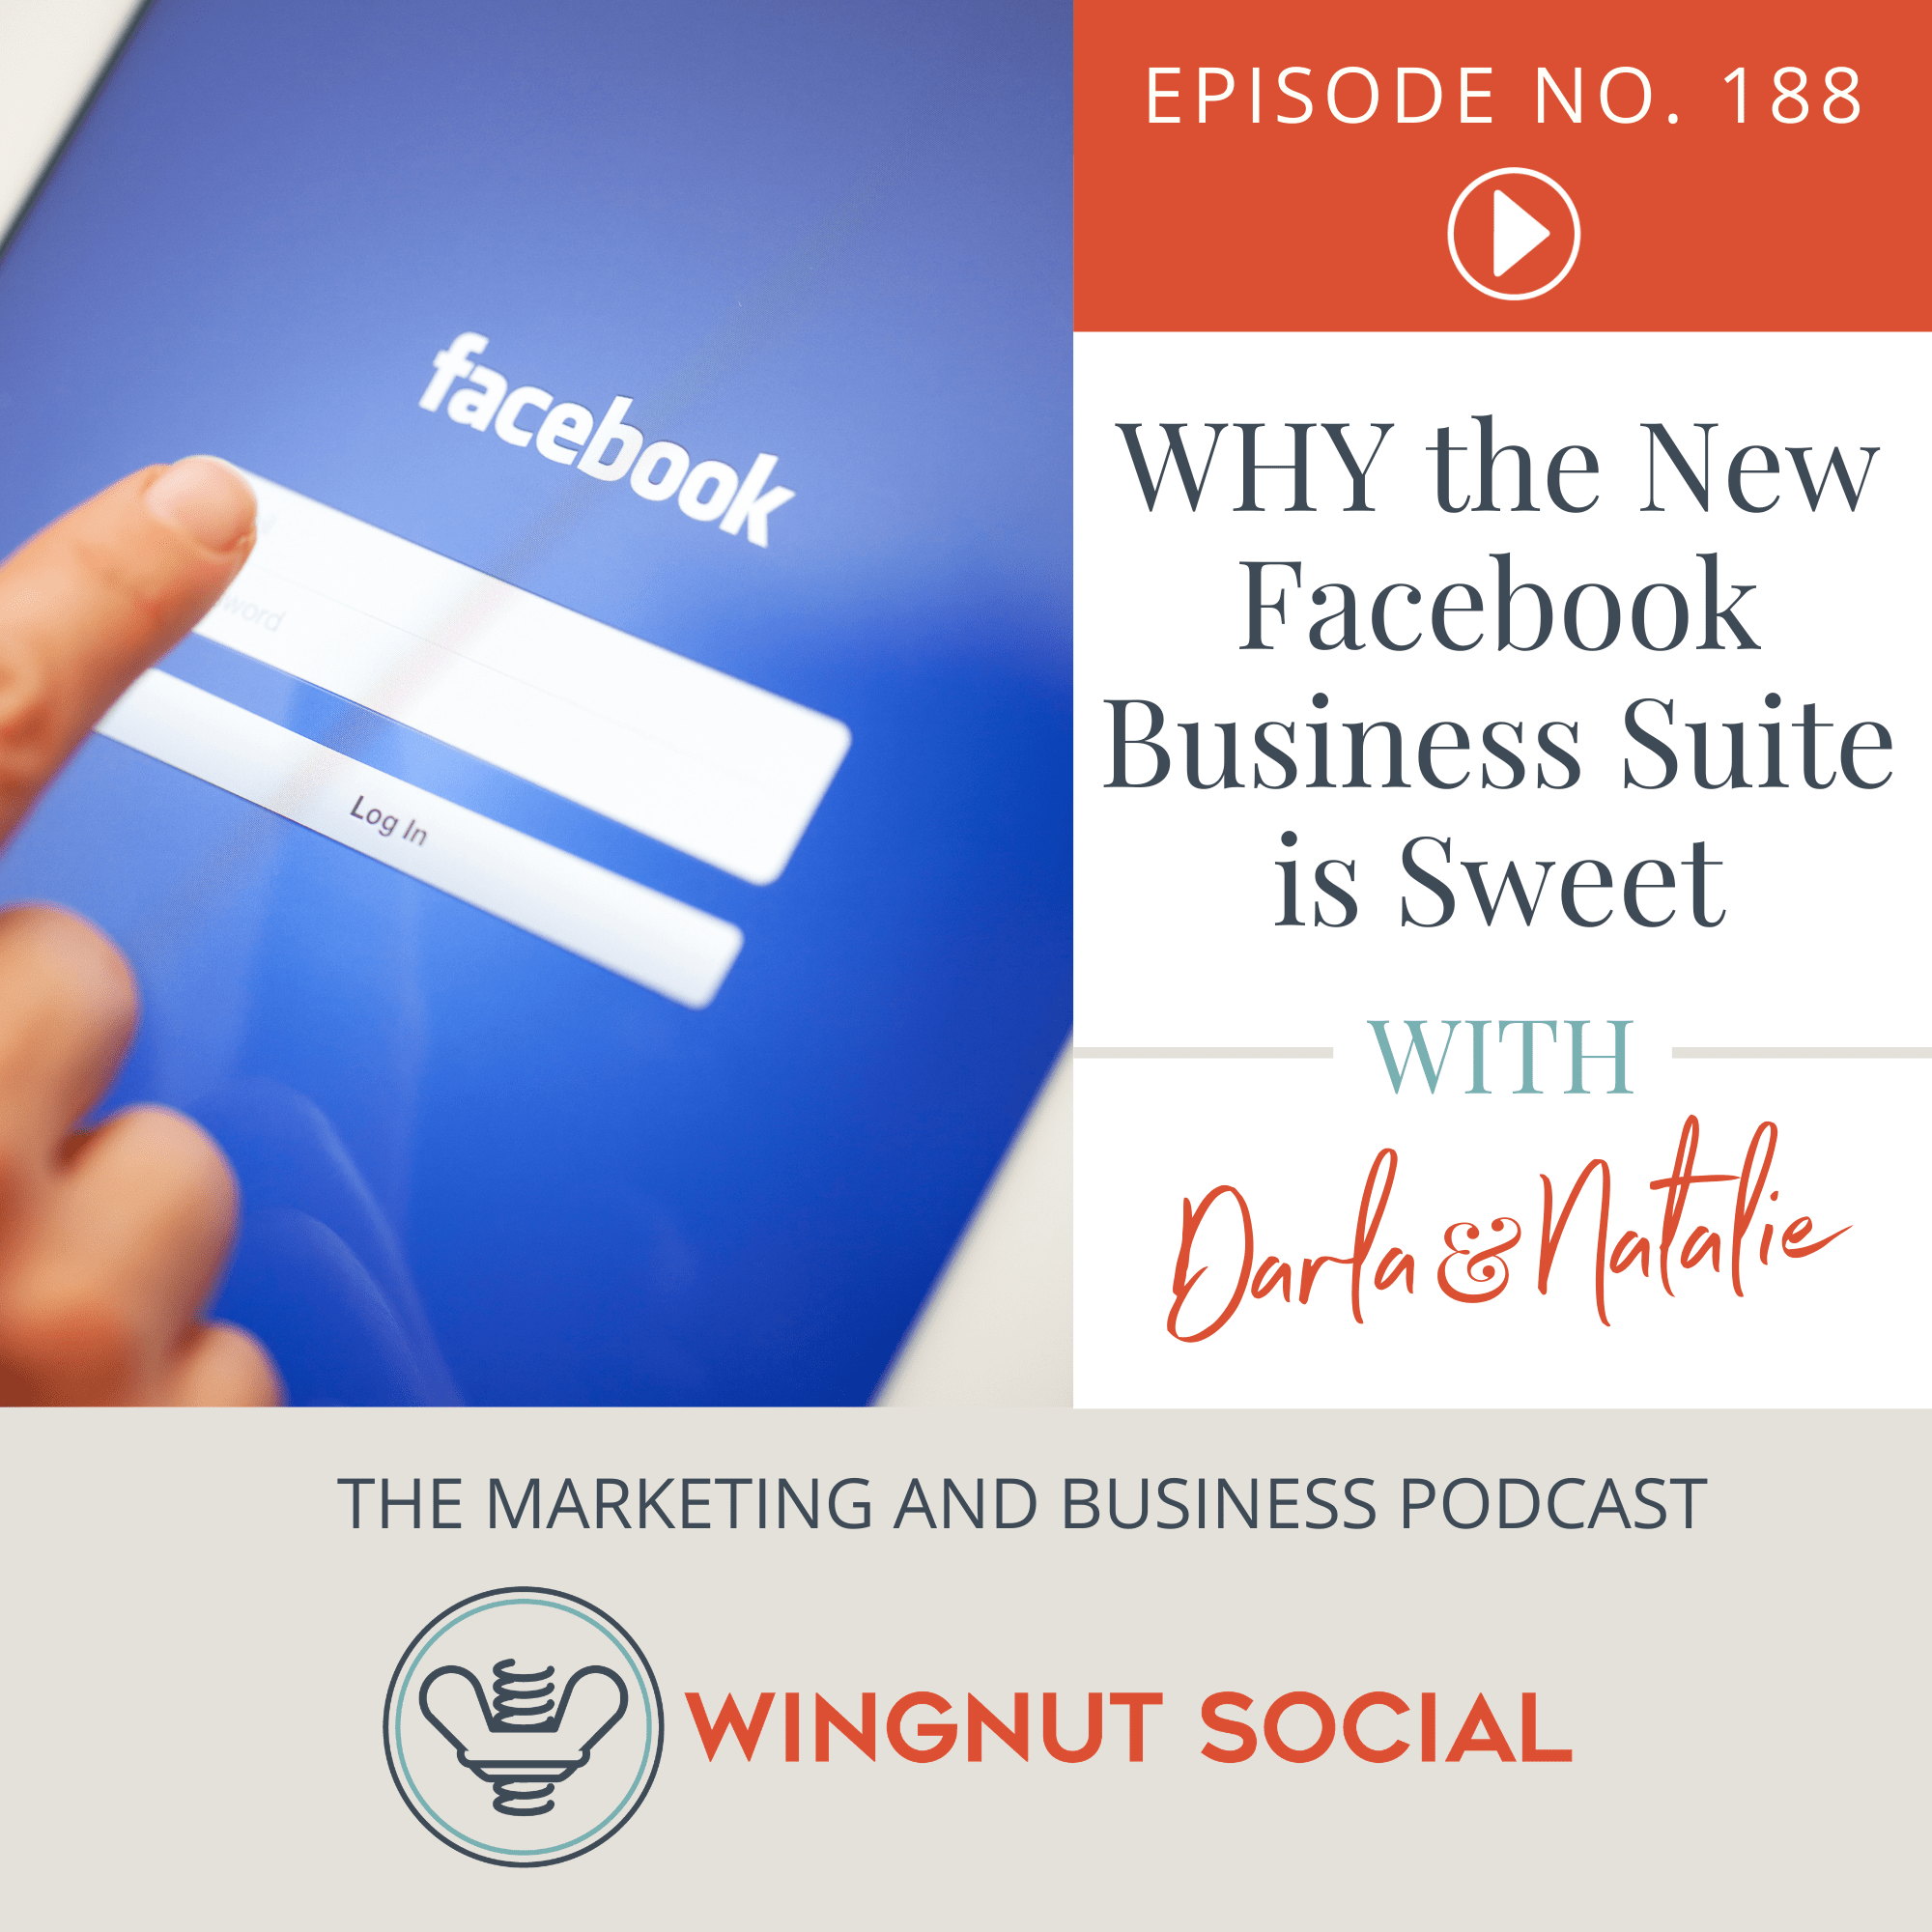 WHY the New Facebook Business Suite is Sweet - Episode 188